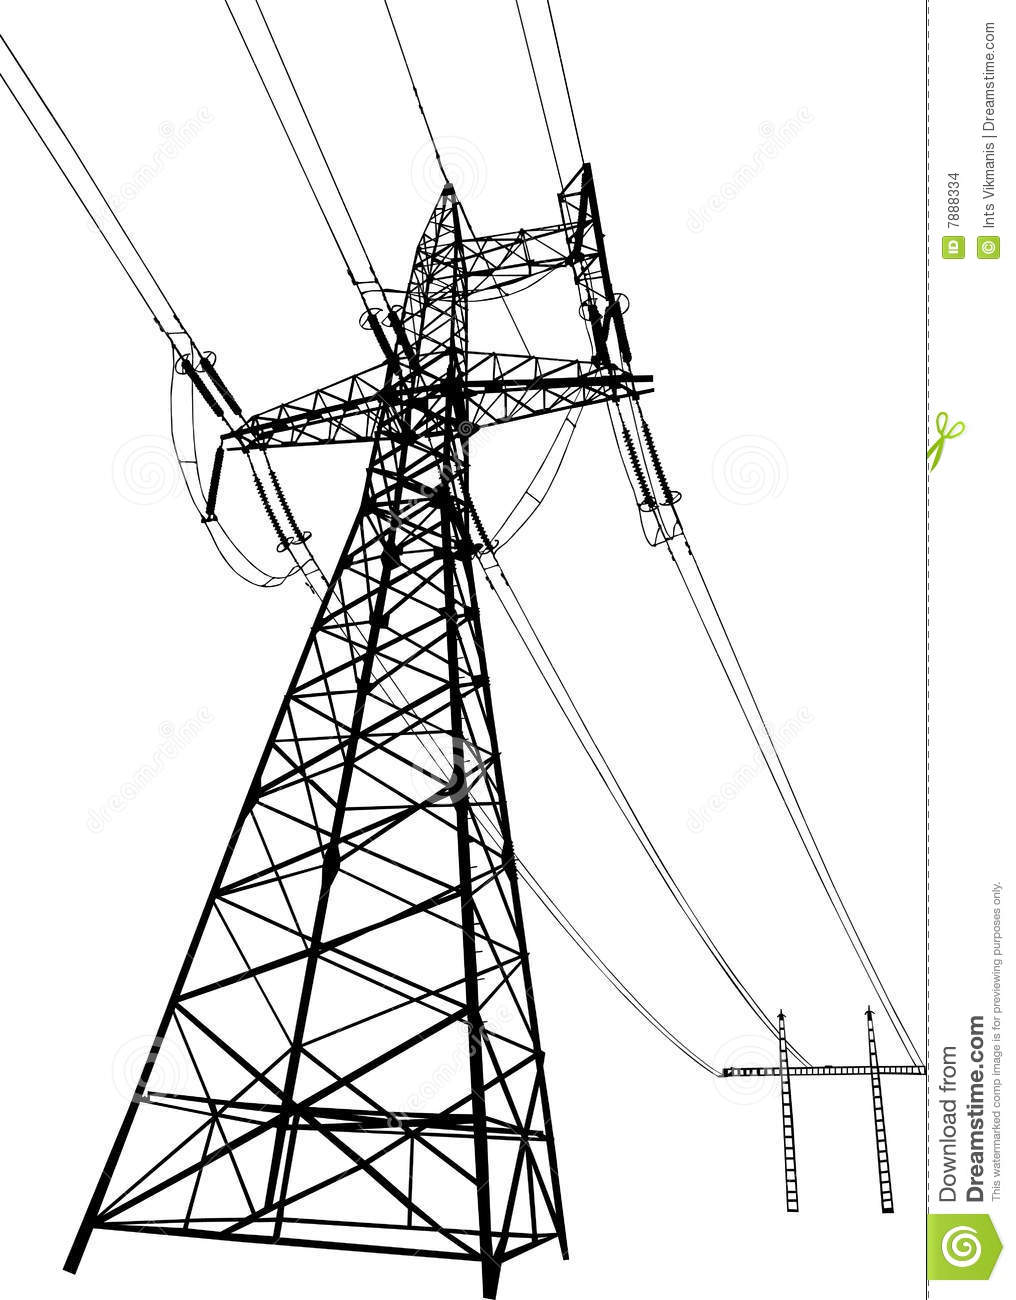 power lines and electric pylons stock images